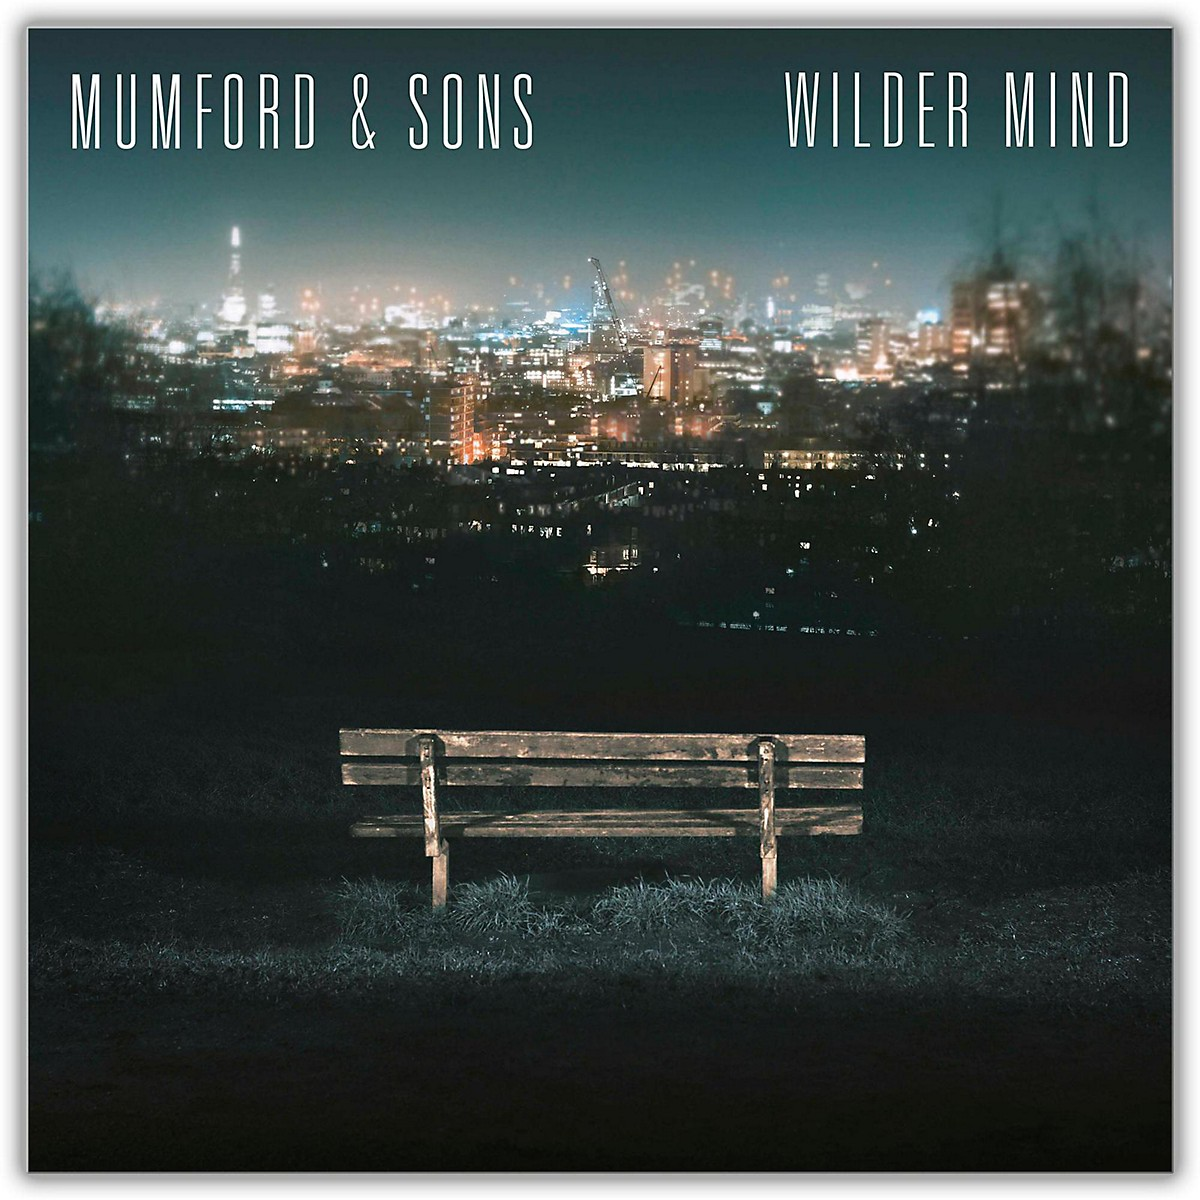 Universal Music Group Mumford & Sons - Wilder Mind Vinyl LP